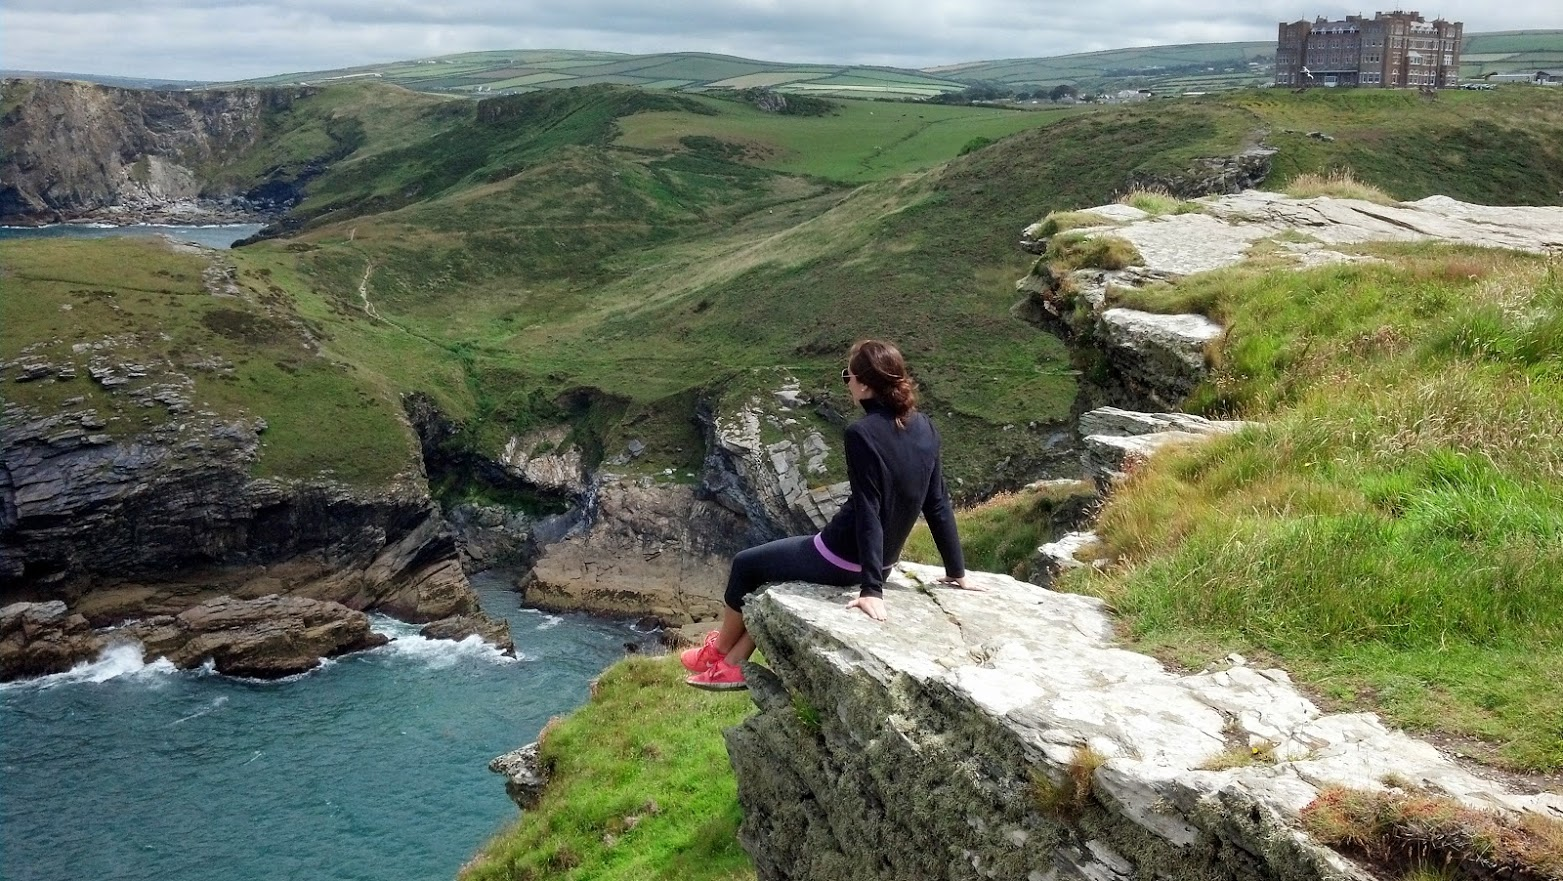 A woman sits atop a cliff in Cornwall, England. She is looking out over the ocean and the rolling hills of the English countryside. At this site she is experiencing the natural elements of the wind in her face, the ocean mist, the solid stone of the cliff, and the warmth of the sun. –photo credit K.McHale